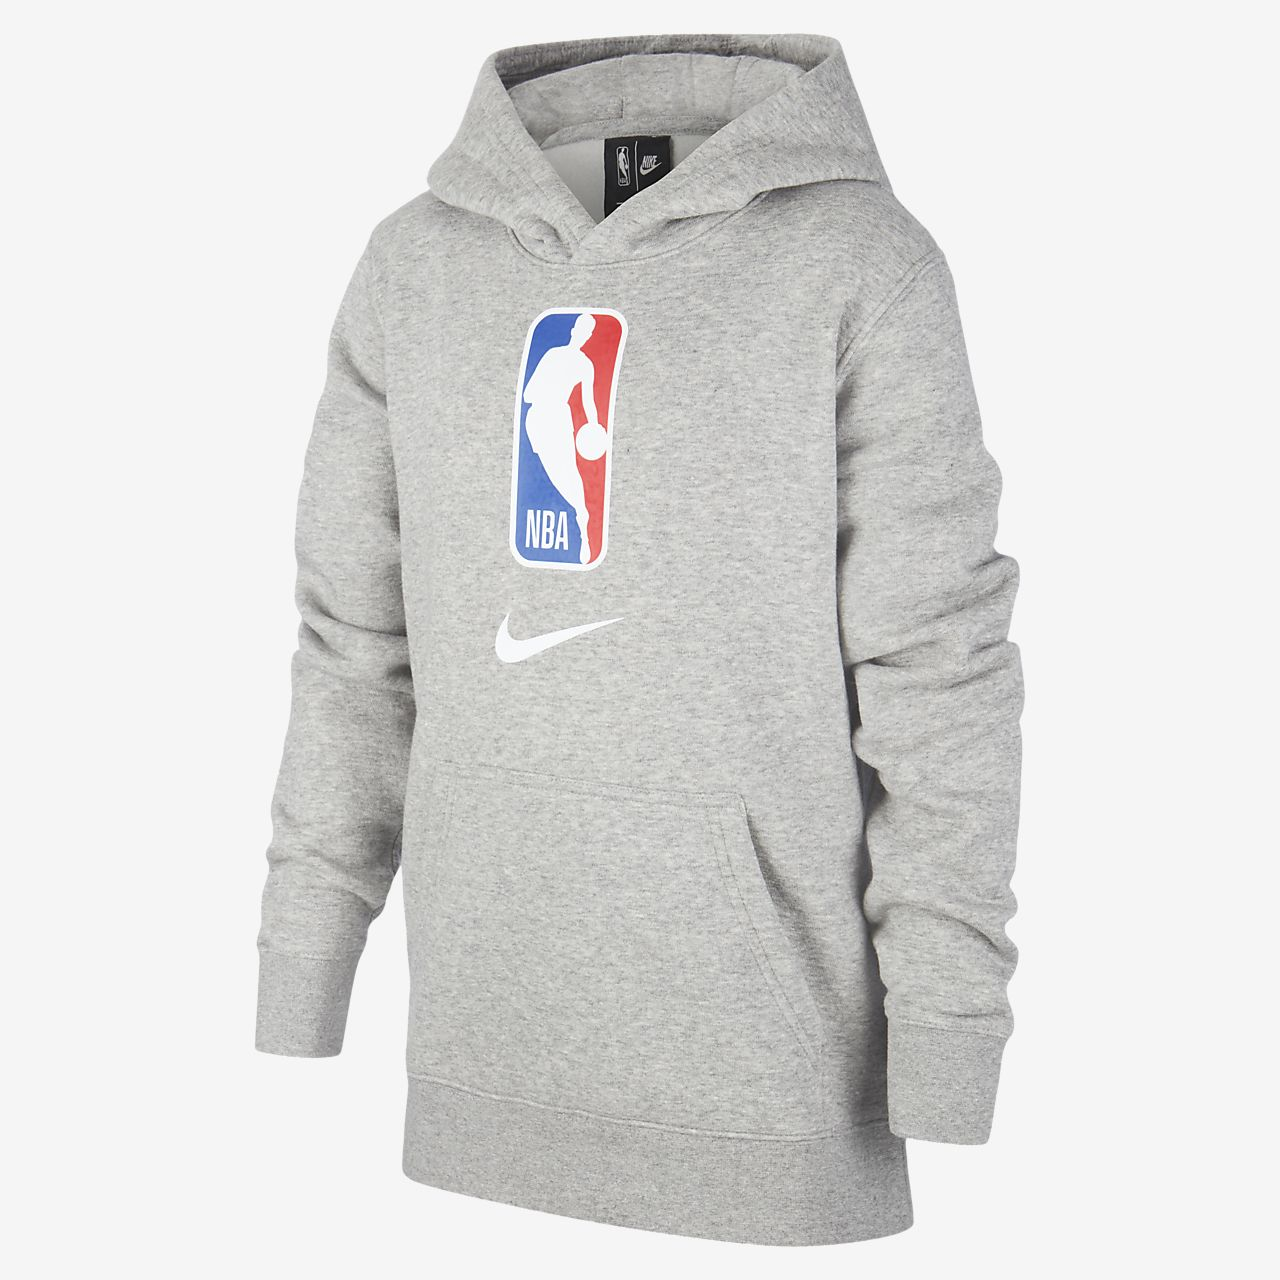 Team 31 Older Kids' Nike NBA Hoodie. Nike LU